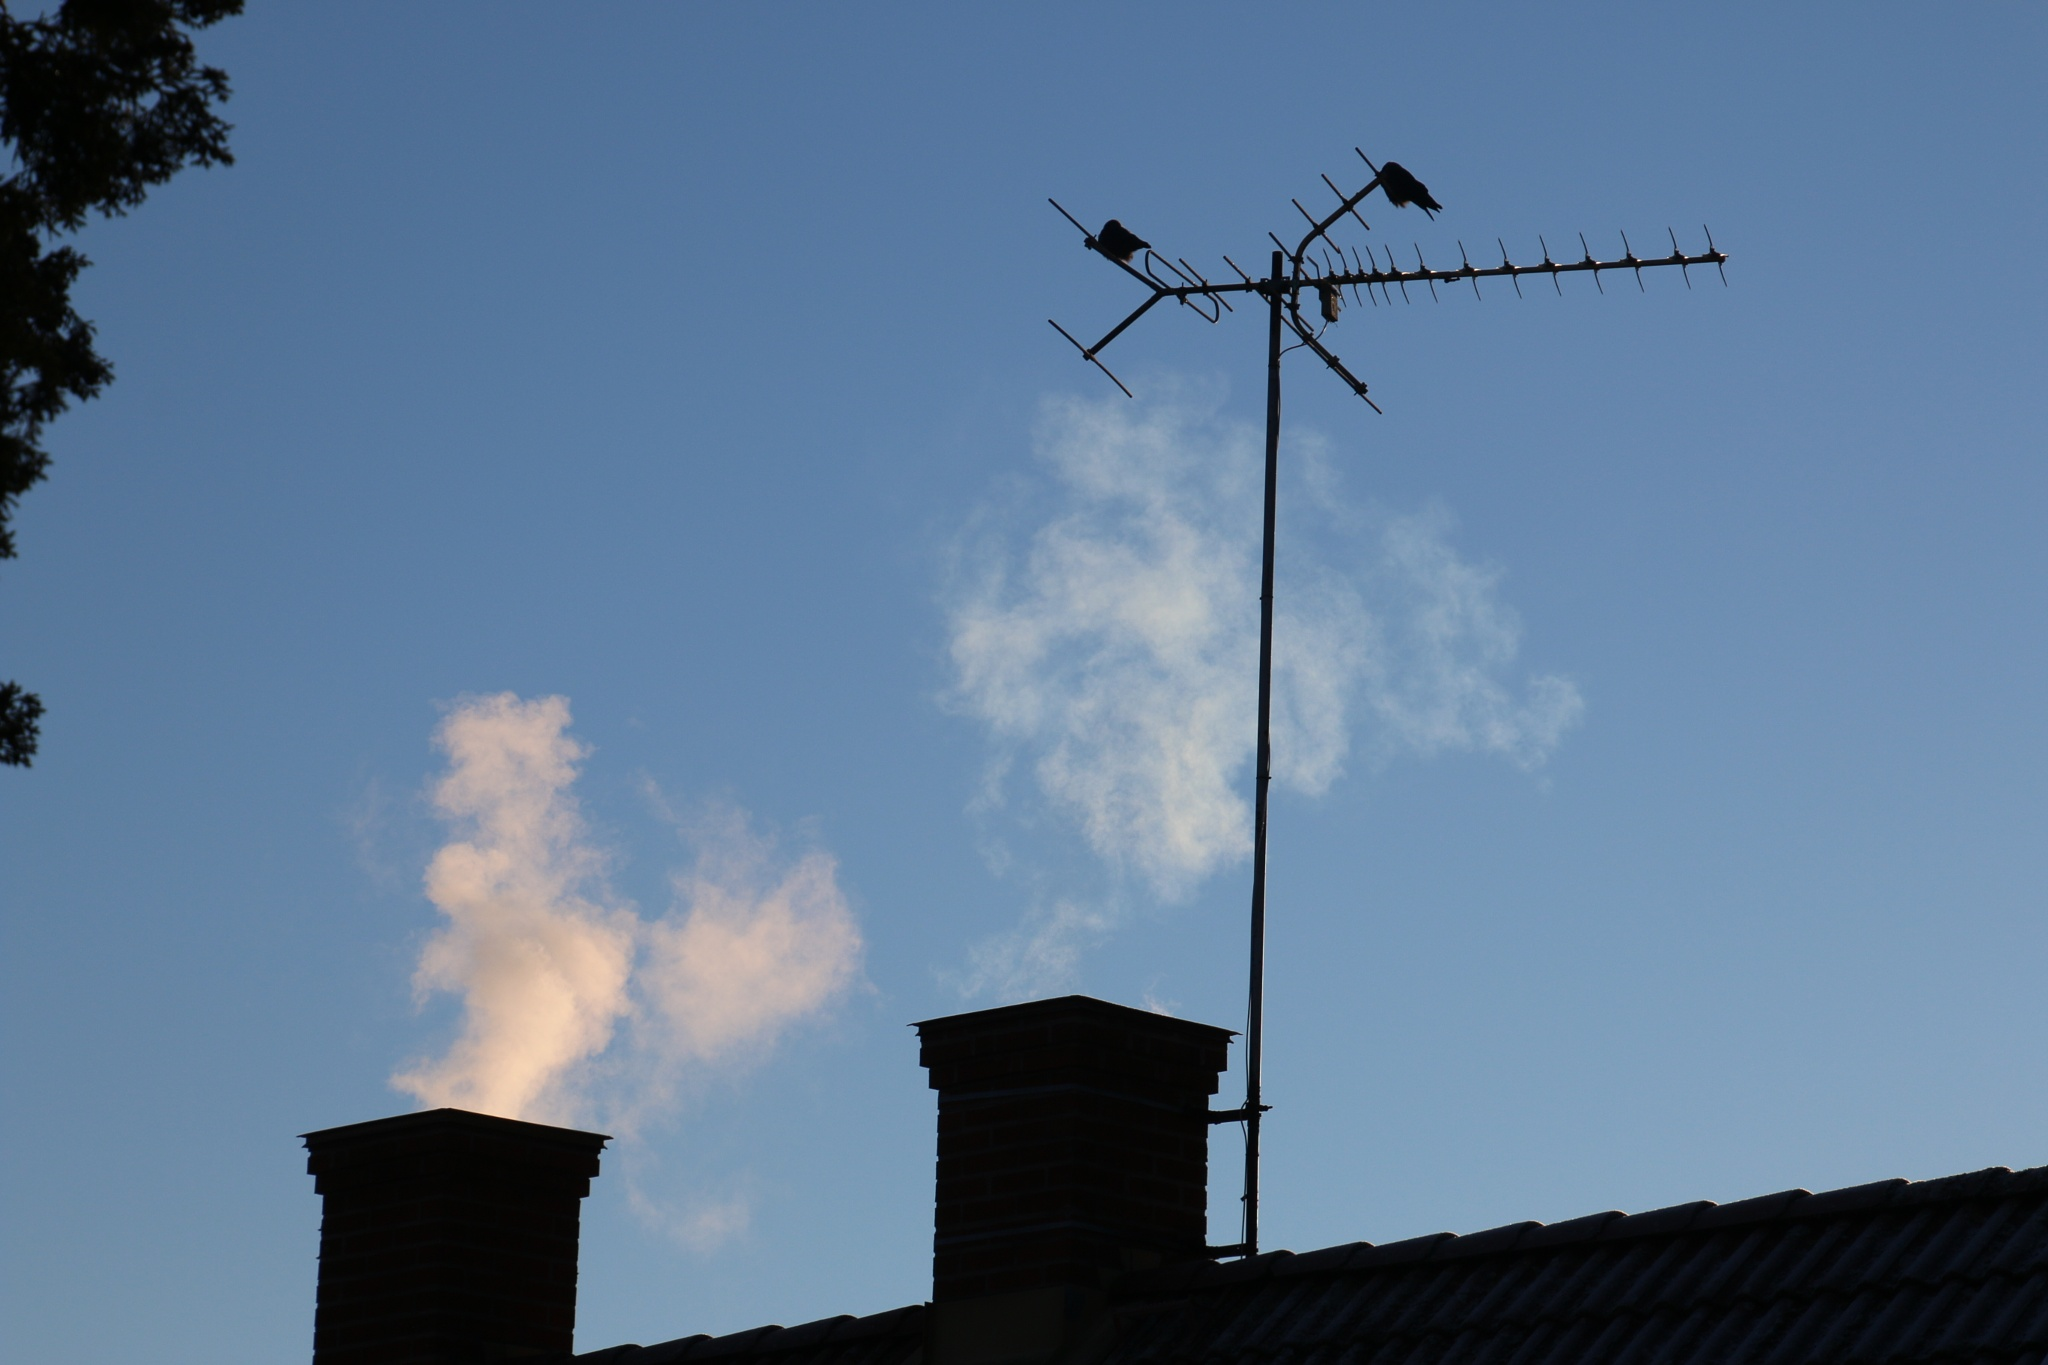 Jackdaws keeping close to the chimneys by Mikael Ekström